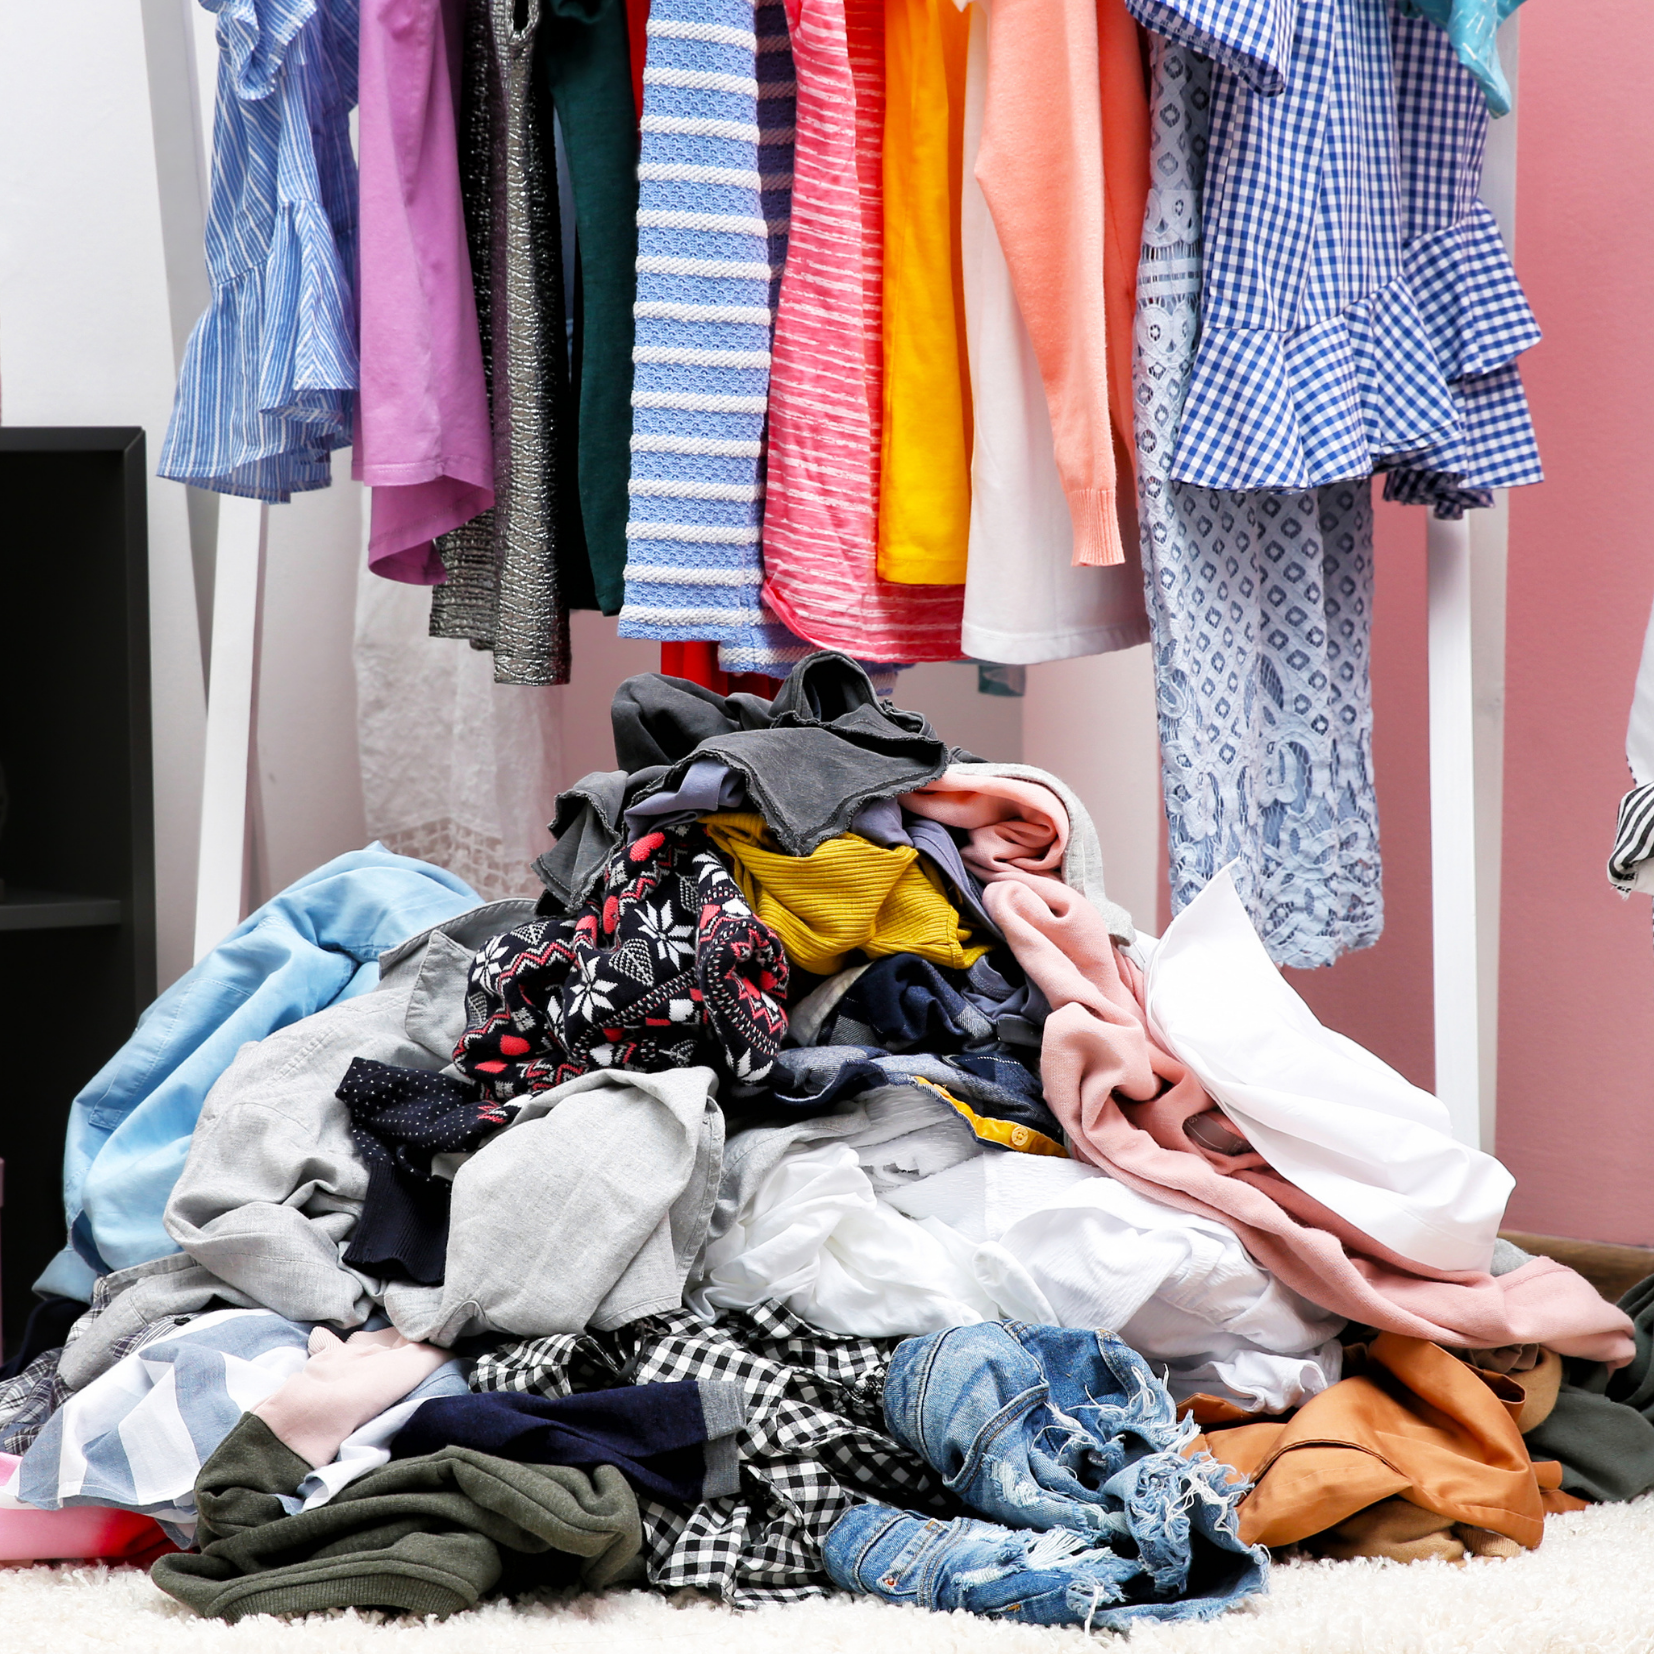 Pile of clothes depicting Weight & Body Concerns